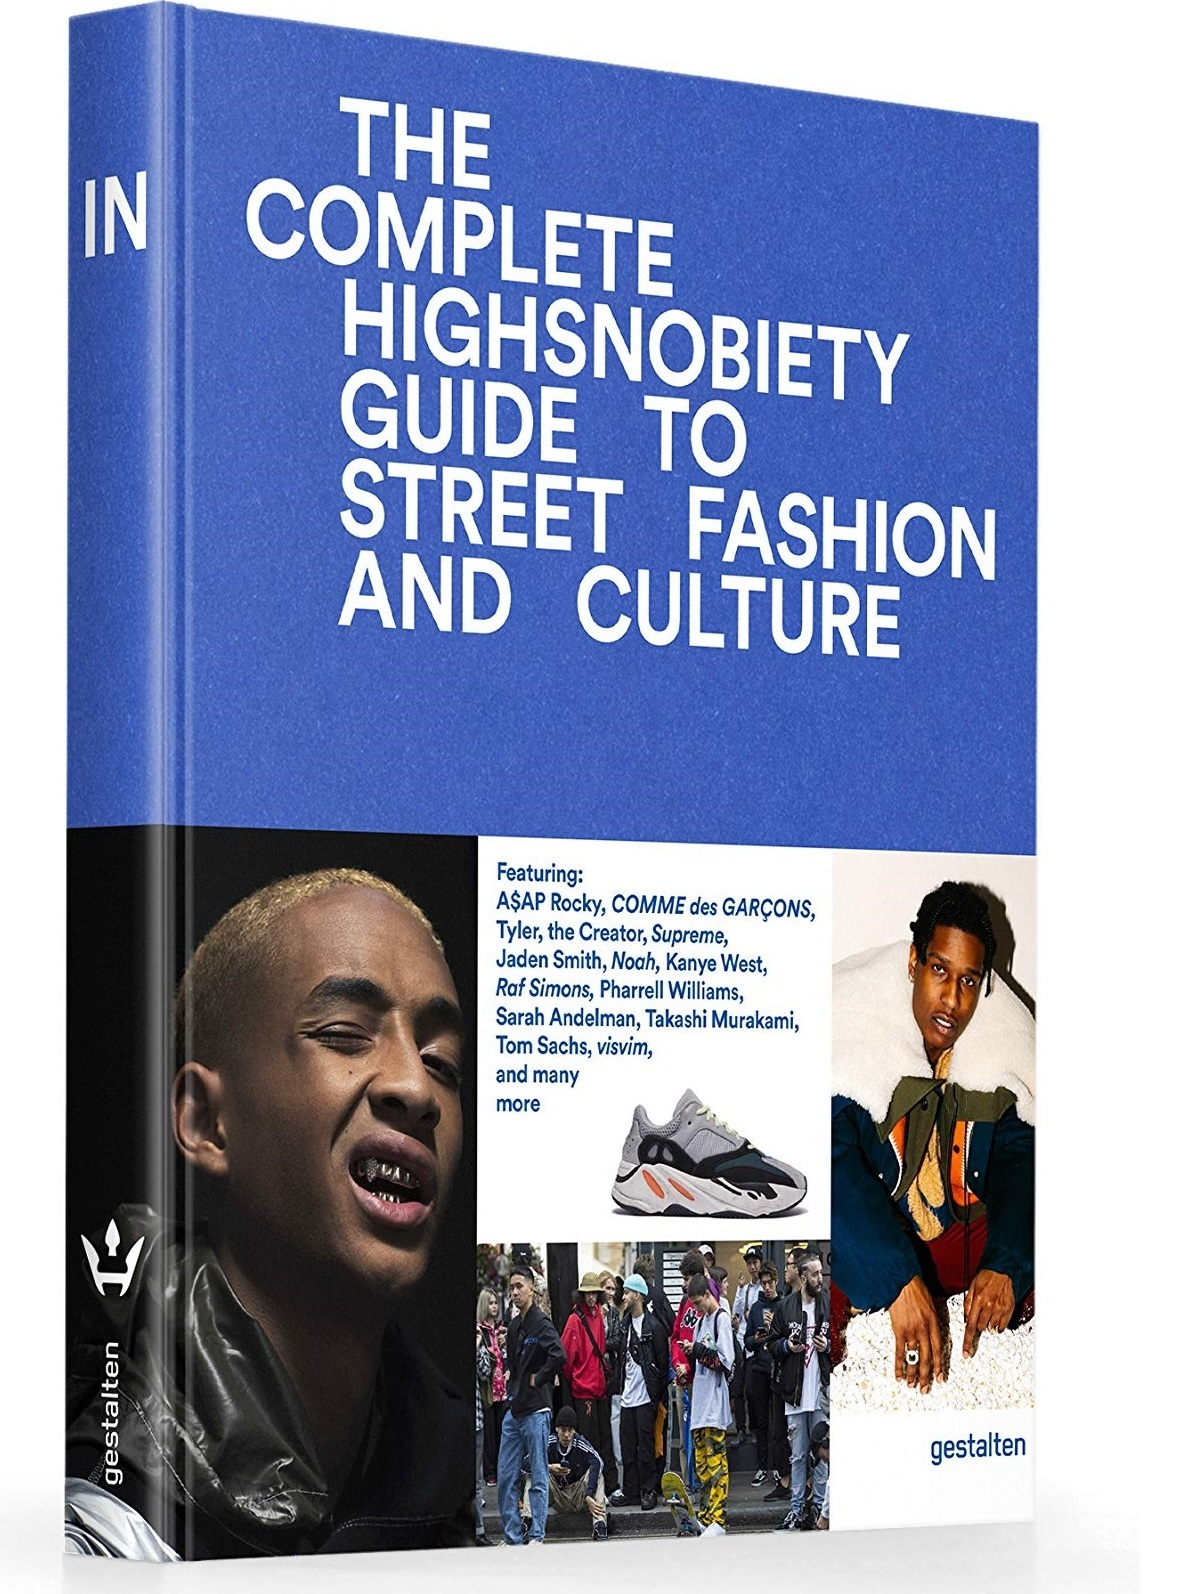 THE INCOMPLETE - HIGHSNOBIETY GUIDE TO STREET FASHION AND CULTURE